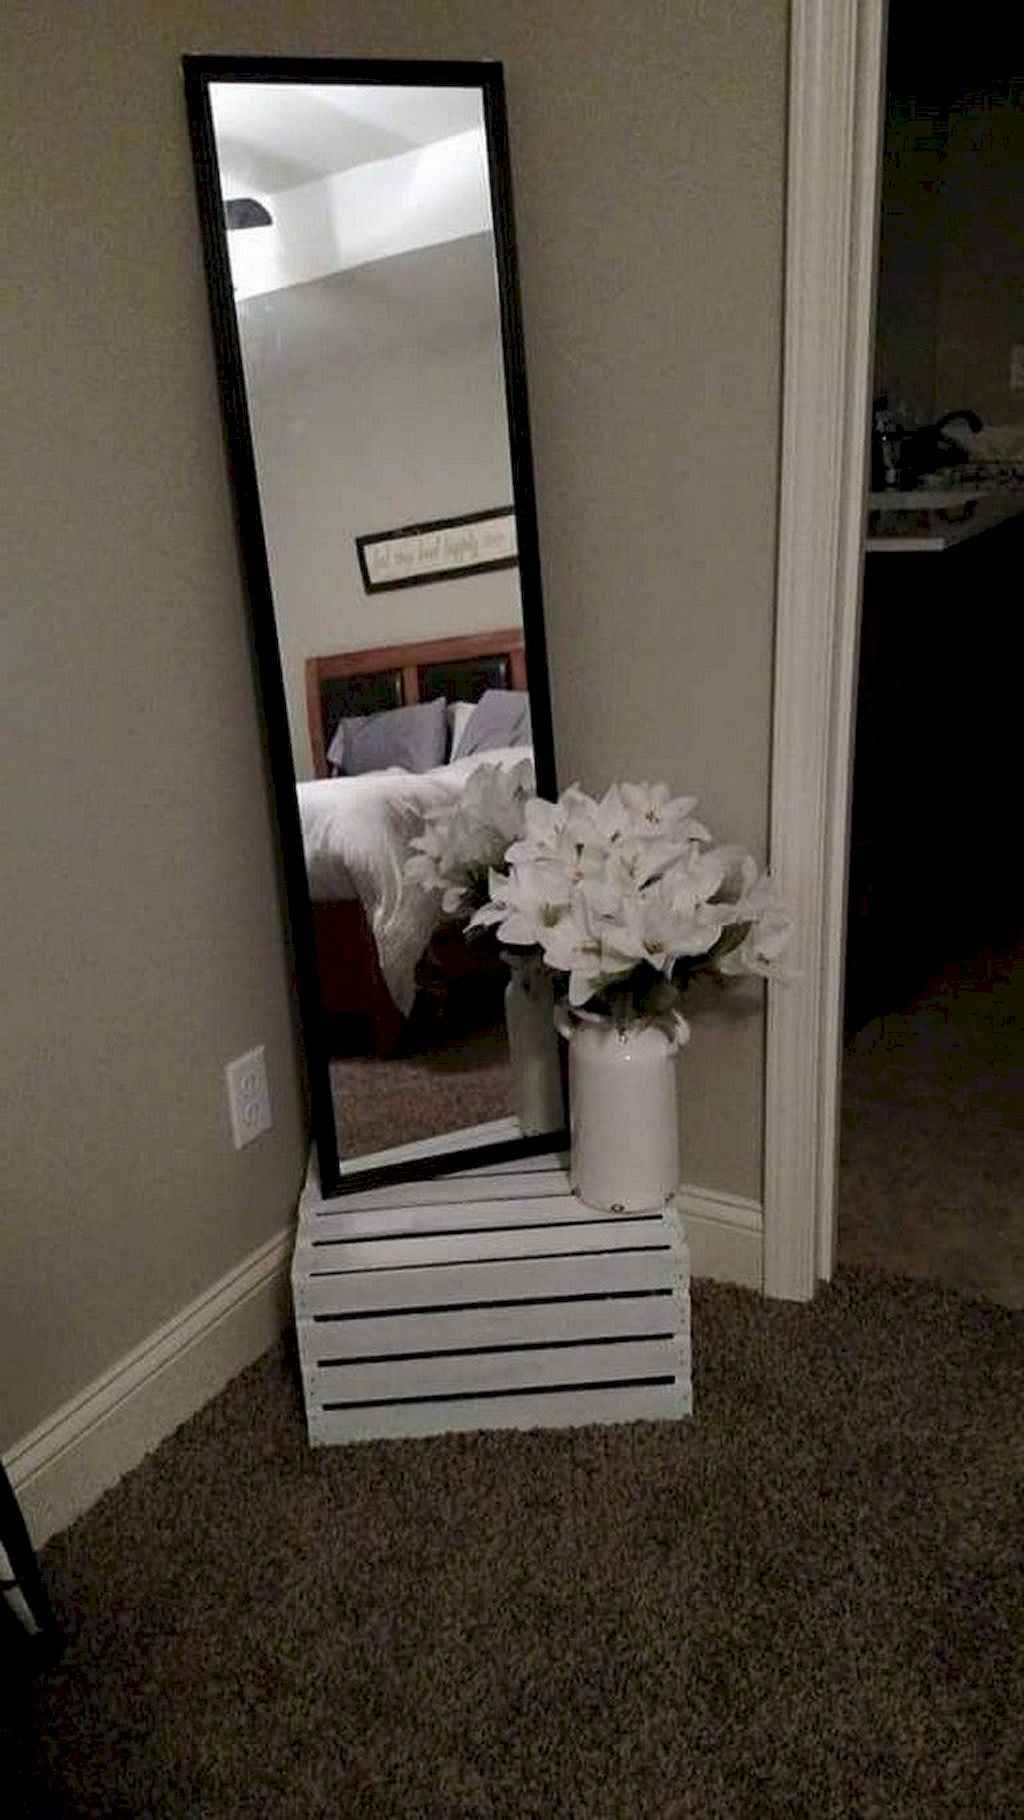 Beautiful First Home Decorating Ideas On A Budget: 45 Cheap And Easy First Apartment Decorating Ideas On A Budget